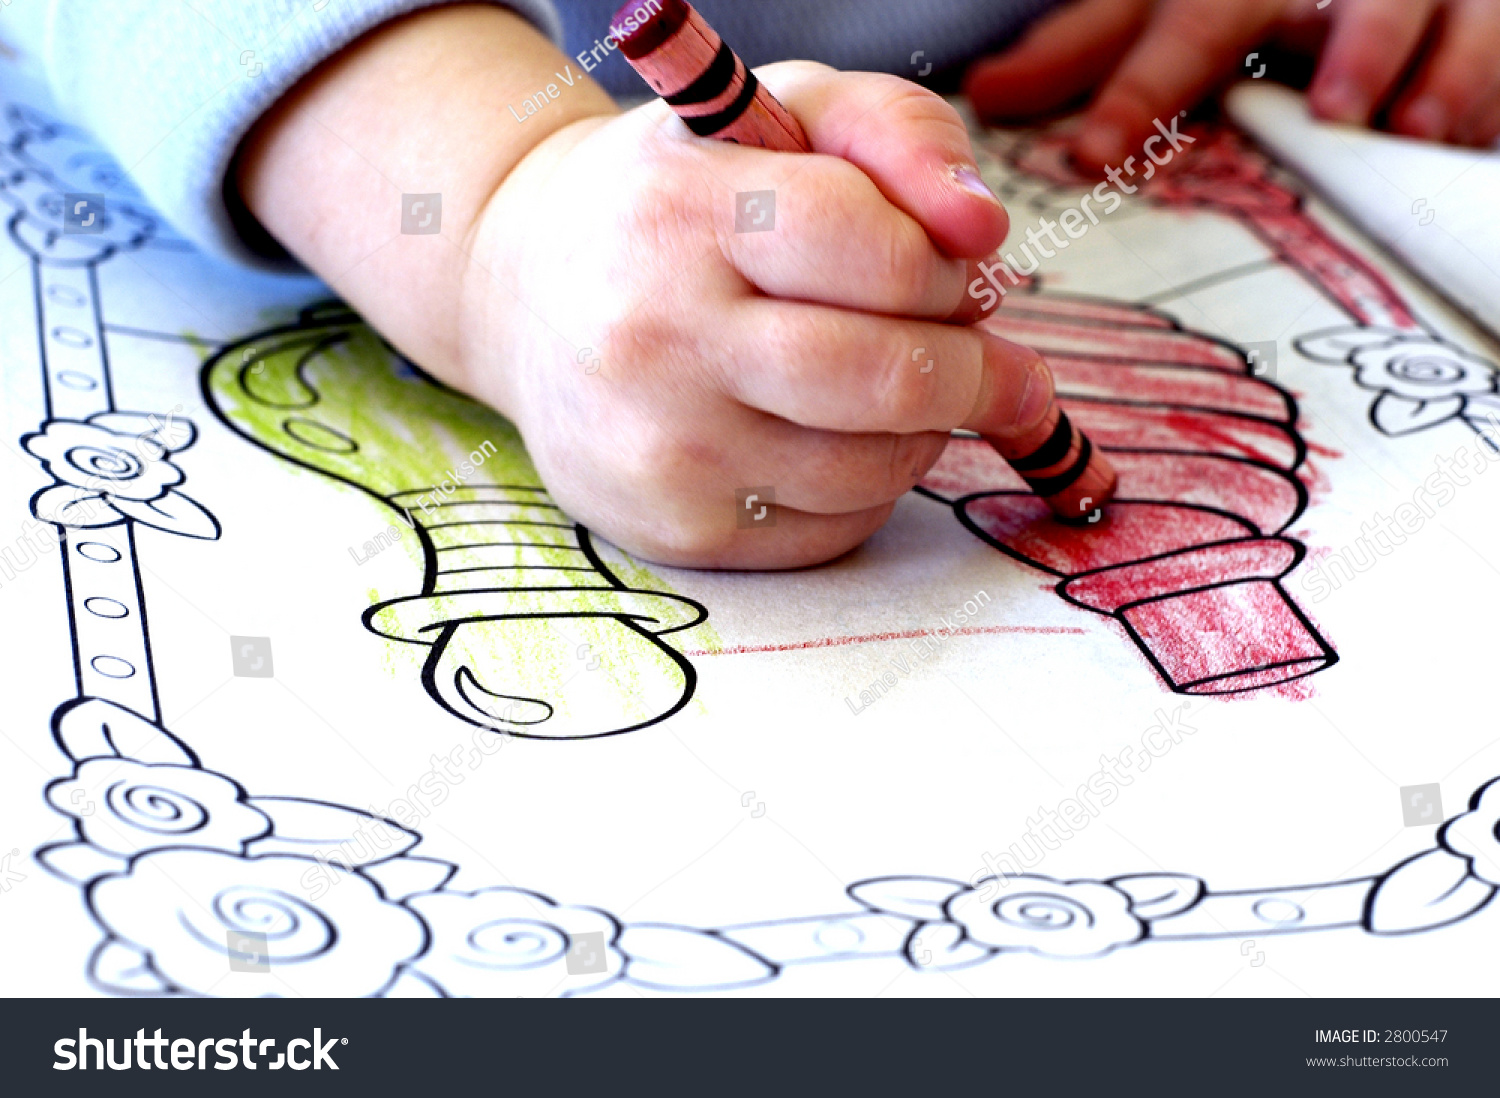 Little Child Coloring Coloring Book Crayons Stock Photo (Edit Now ...